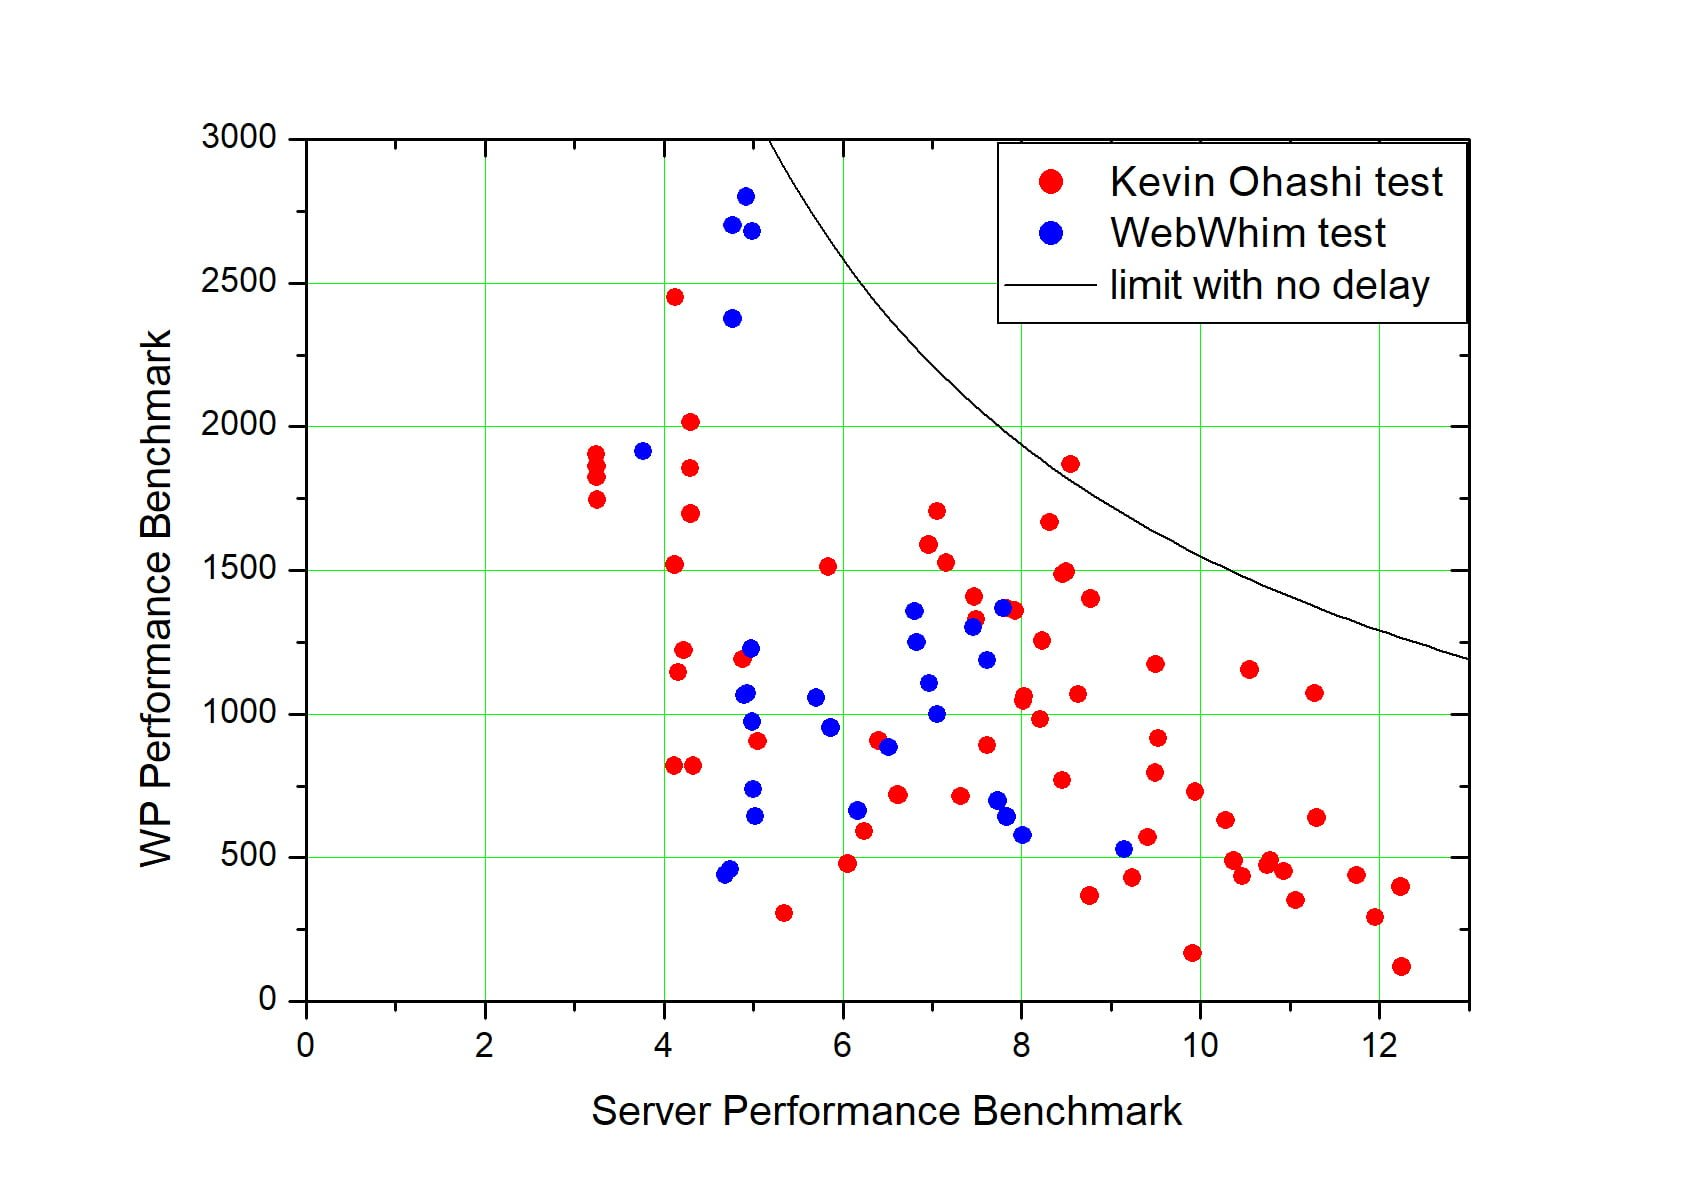 WordPress Performance bencmark measures the latency of requests to the database. It is not related to the hardware performance of the server.